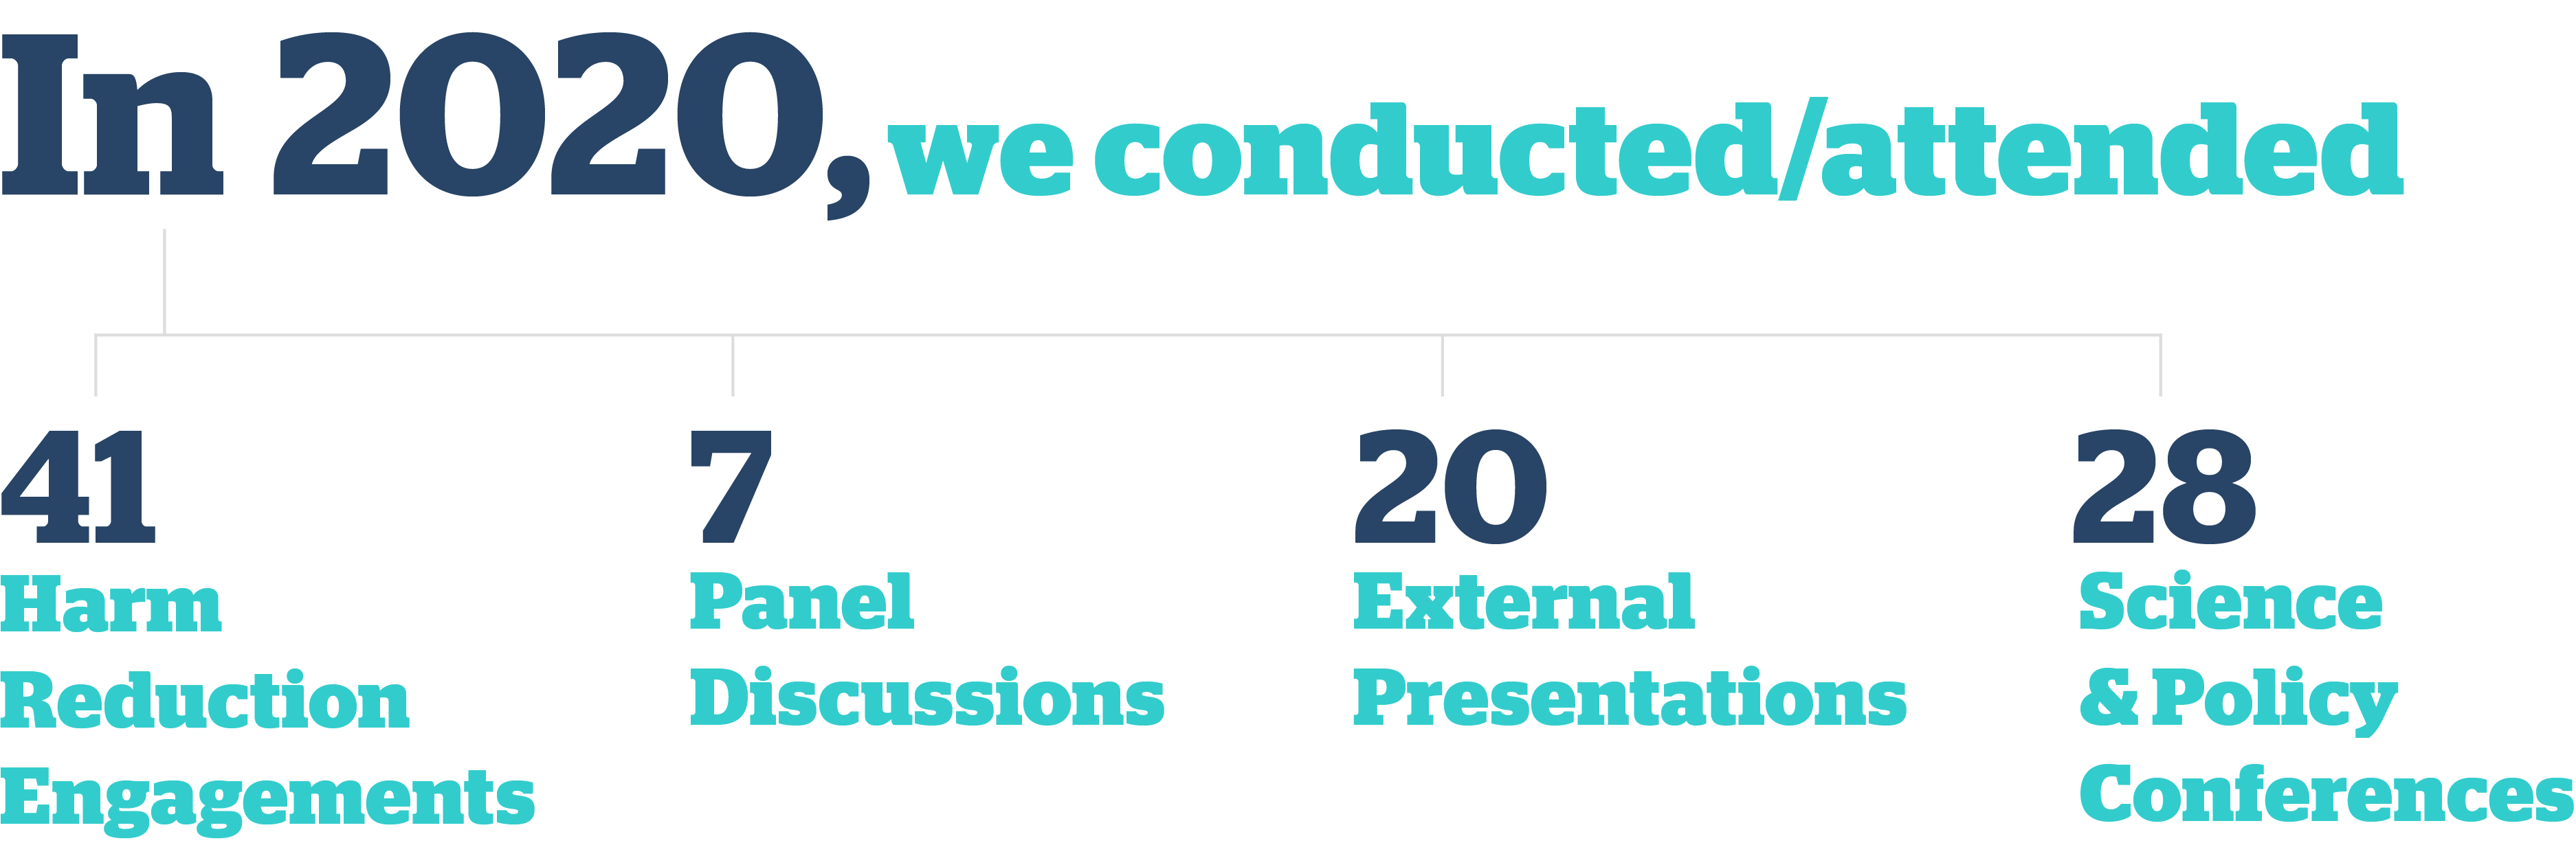 In 2019, we conducted 34 Harm Reduction engagements, 1 Keynote speech, 8 Panel discussions, 72 External Presentations and 26 Science & Policy Conferences